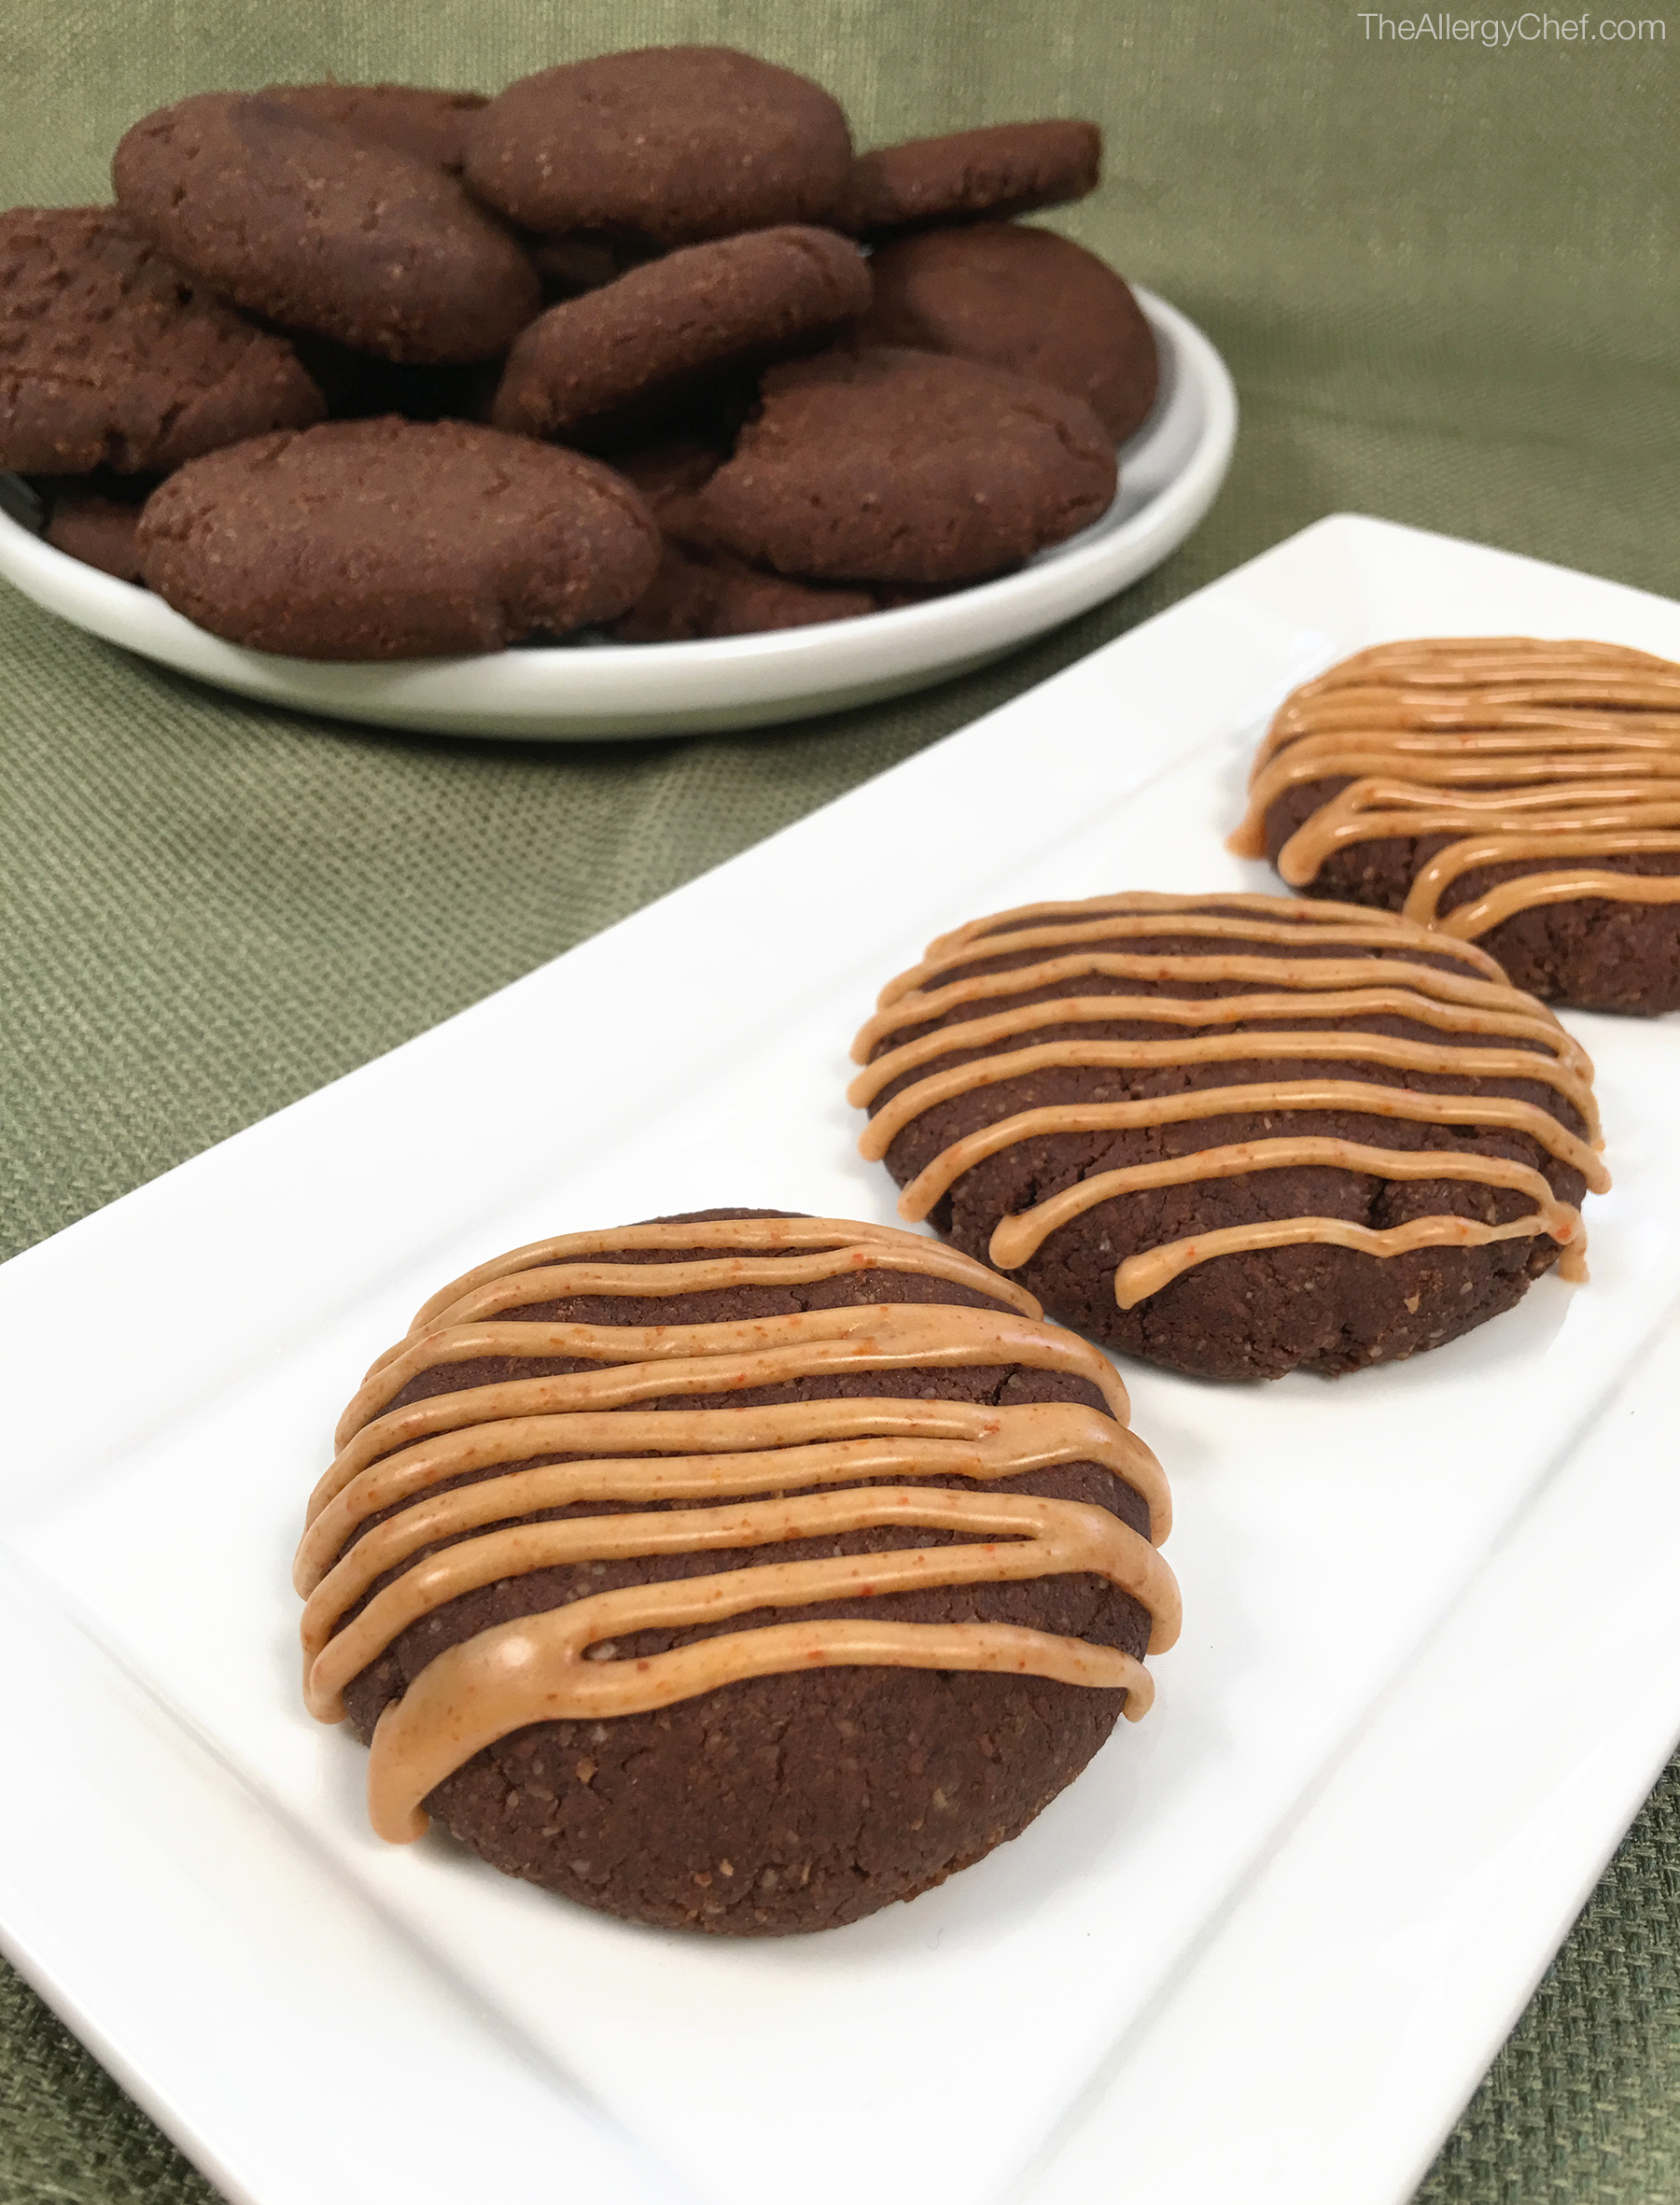 Spicy Chocolate Cookies by The Allergy Chef, Gluten Free, Vegan, Top 8 Free